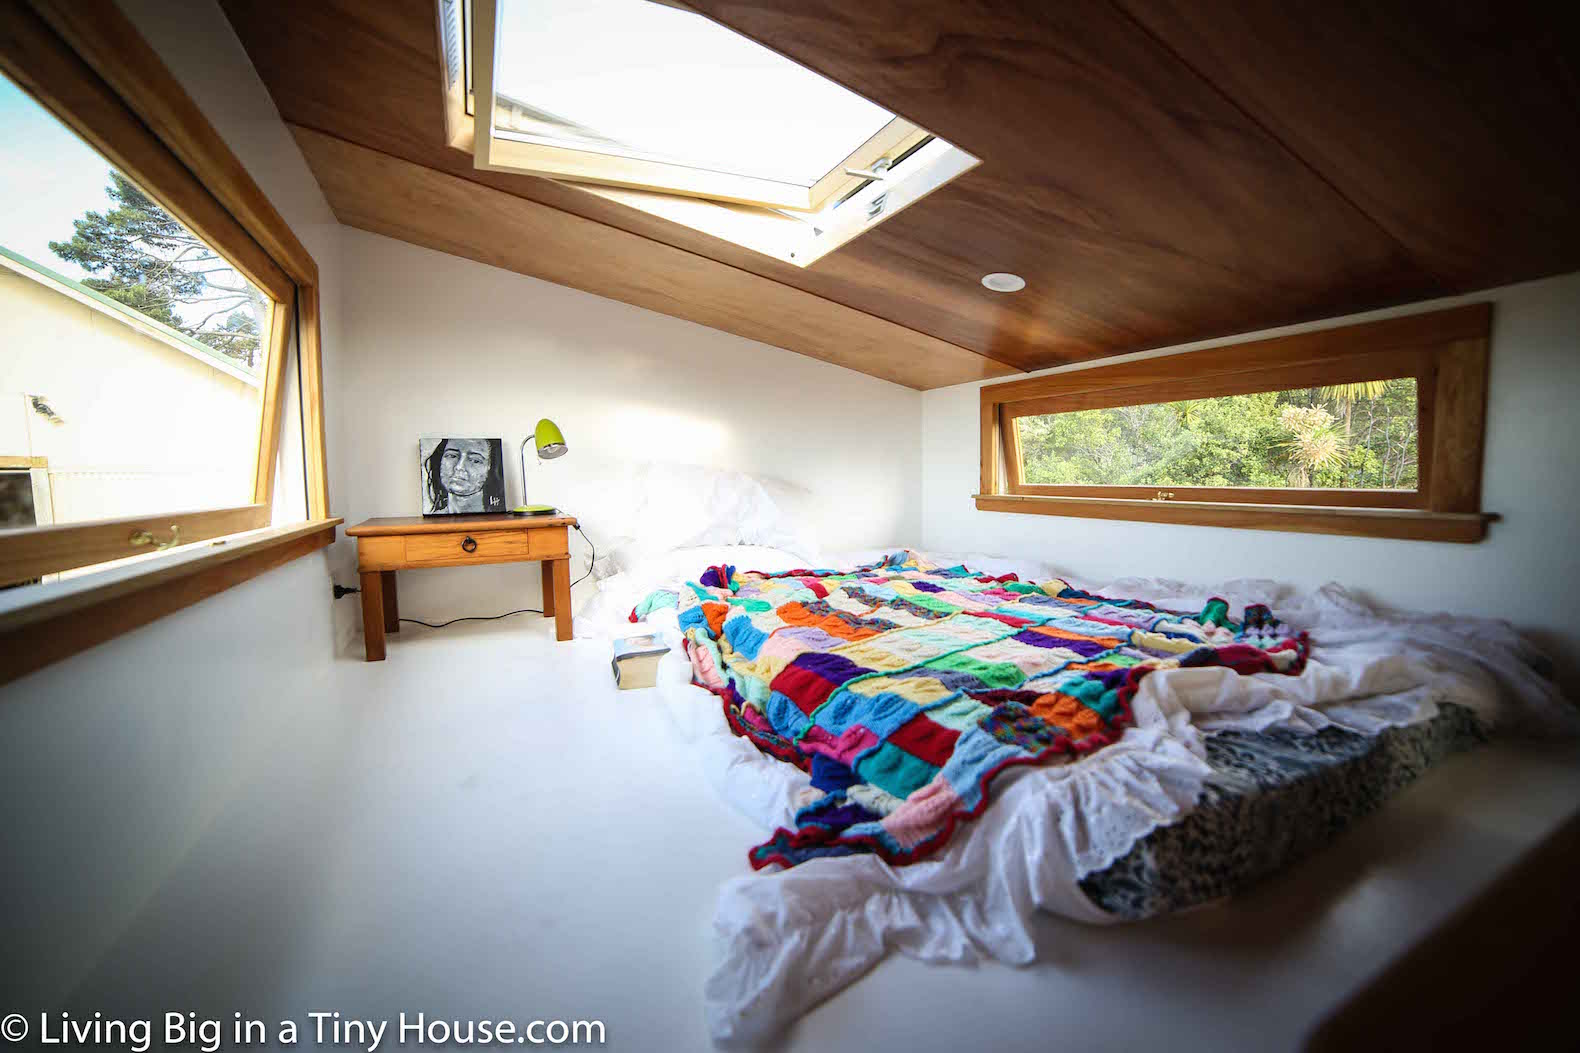 Big House Inside Bedroom luxurious tiny home in new zealand is off-grid and 100% self